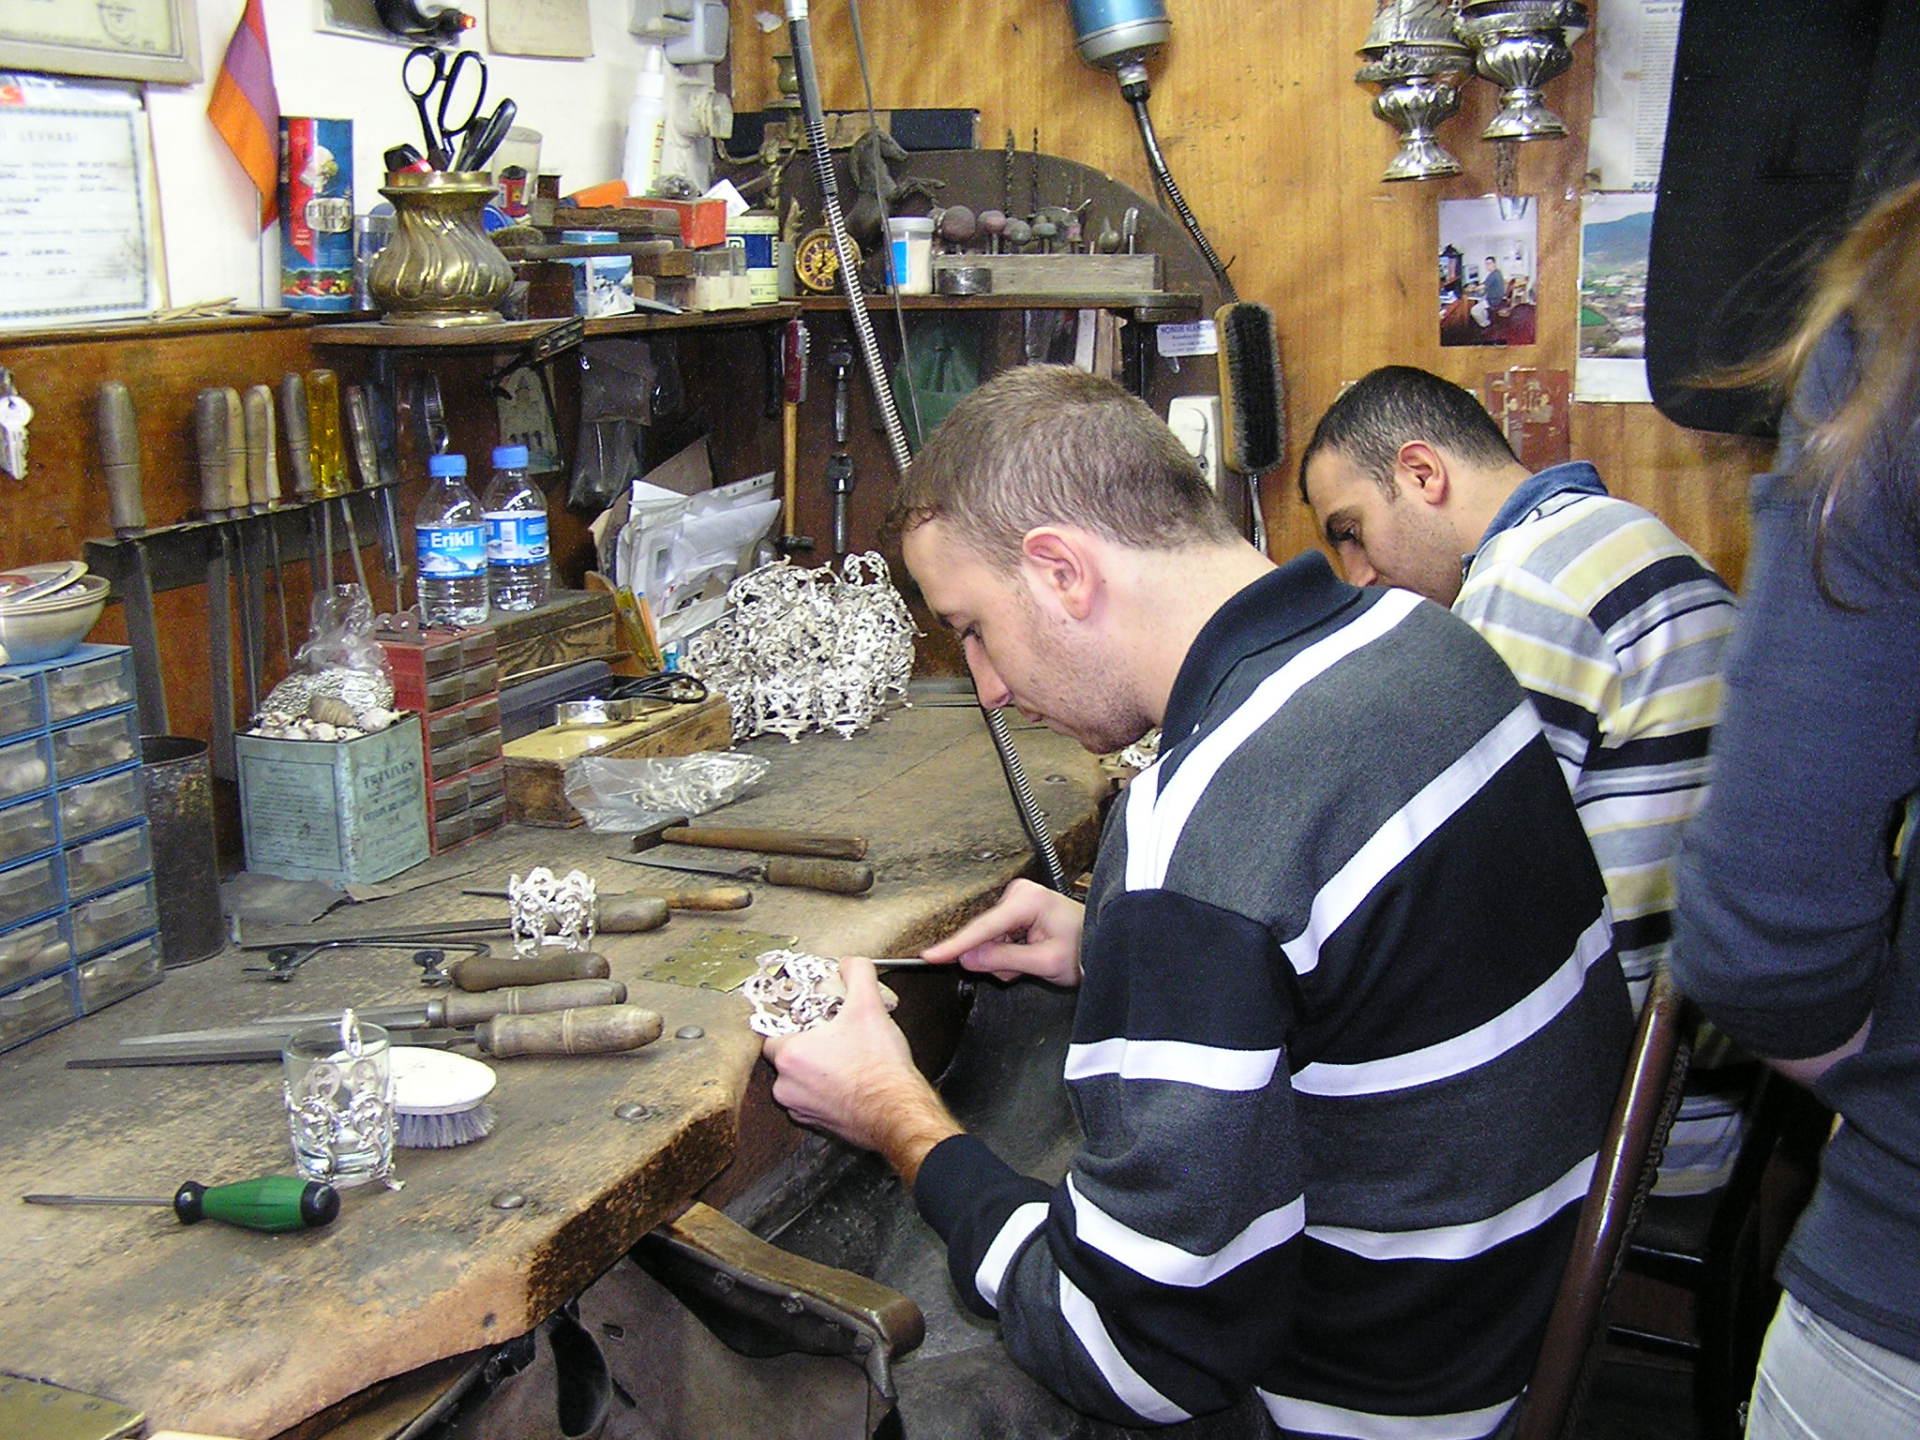 Silversmiths file silver cup holders  in the workshop of Aruş Taş, Kalcılar Han. Istanbul, Turkey: annmariemershon.com